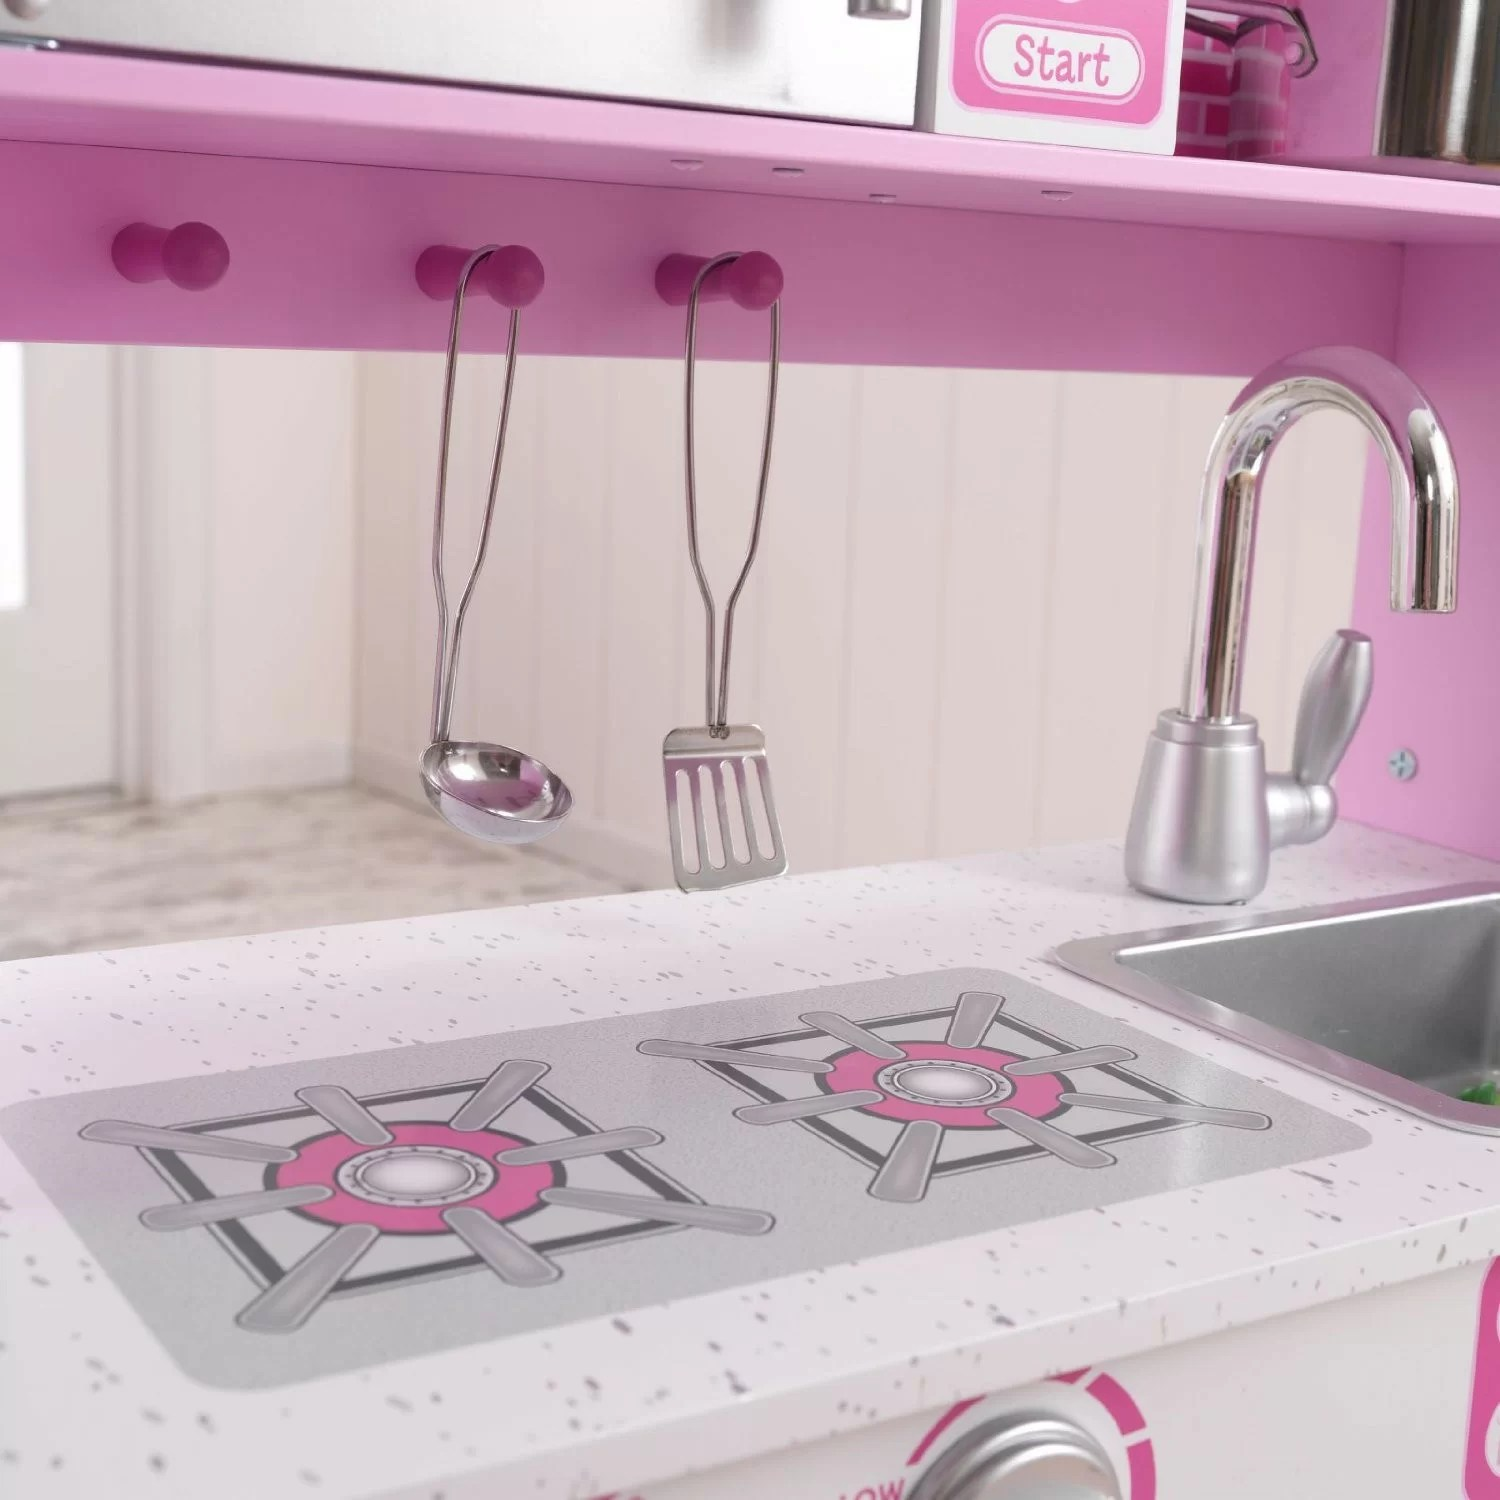 kidkraft pink retro kitchen & refrigerator 53160 faucet with side spray pretend play w accessories